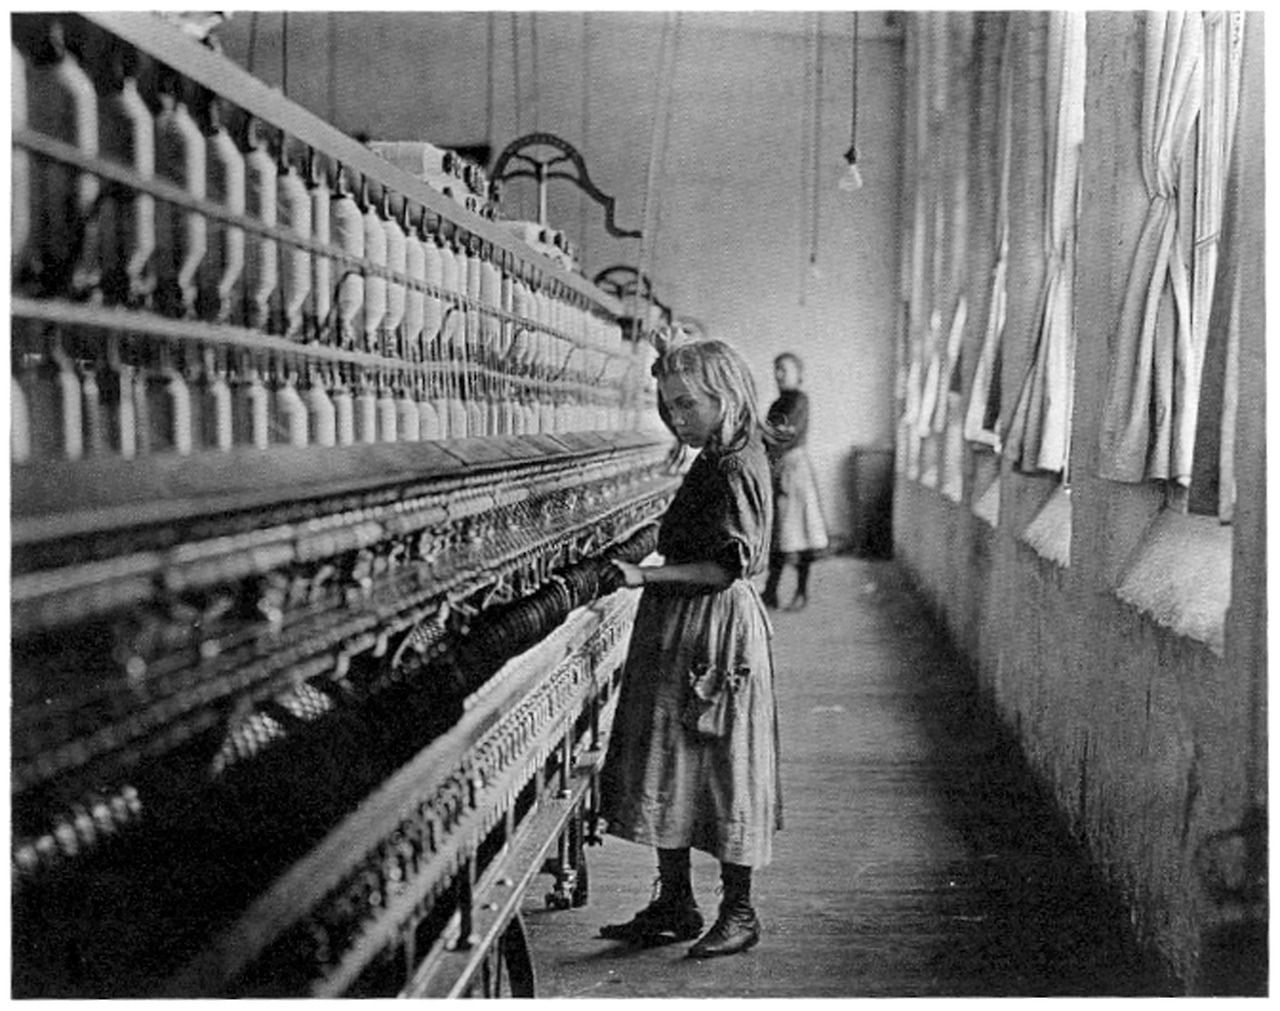 Young Children Working As A Laborer In Textile Mills